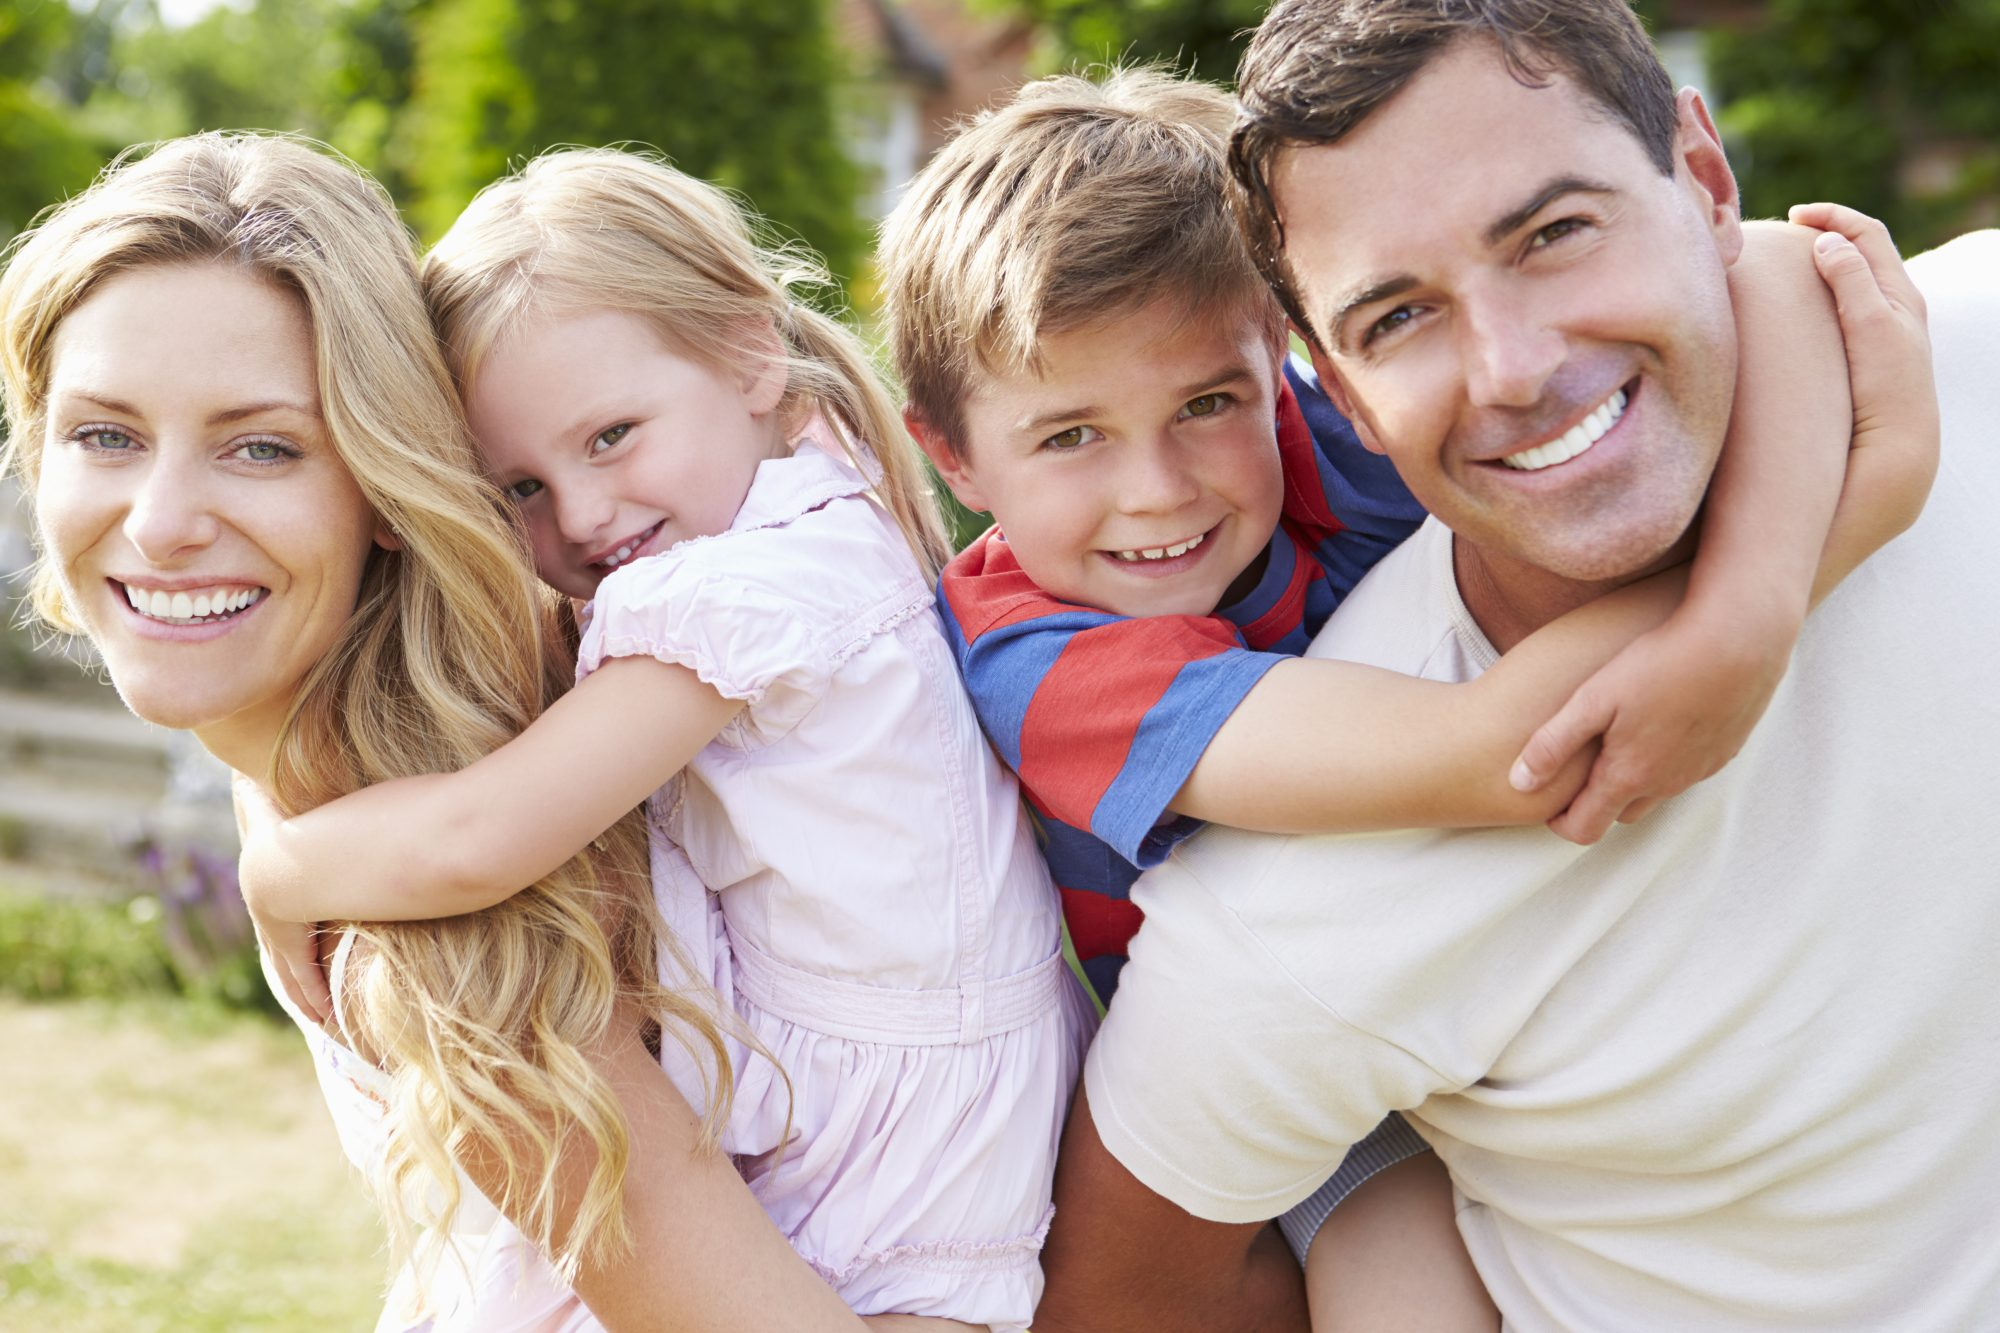 Happy family in Braselton GA - One of the safest cities in State